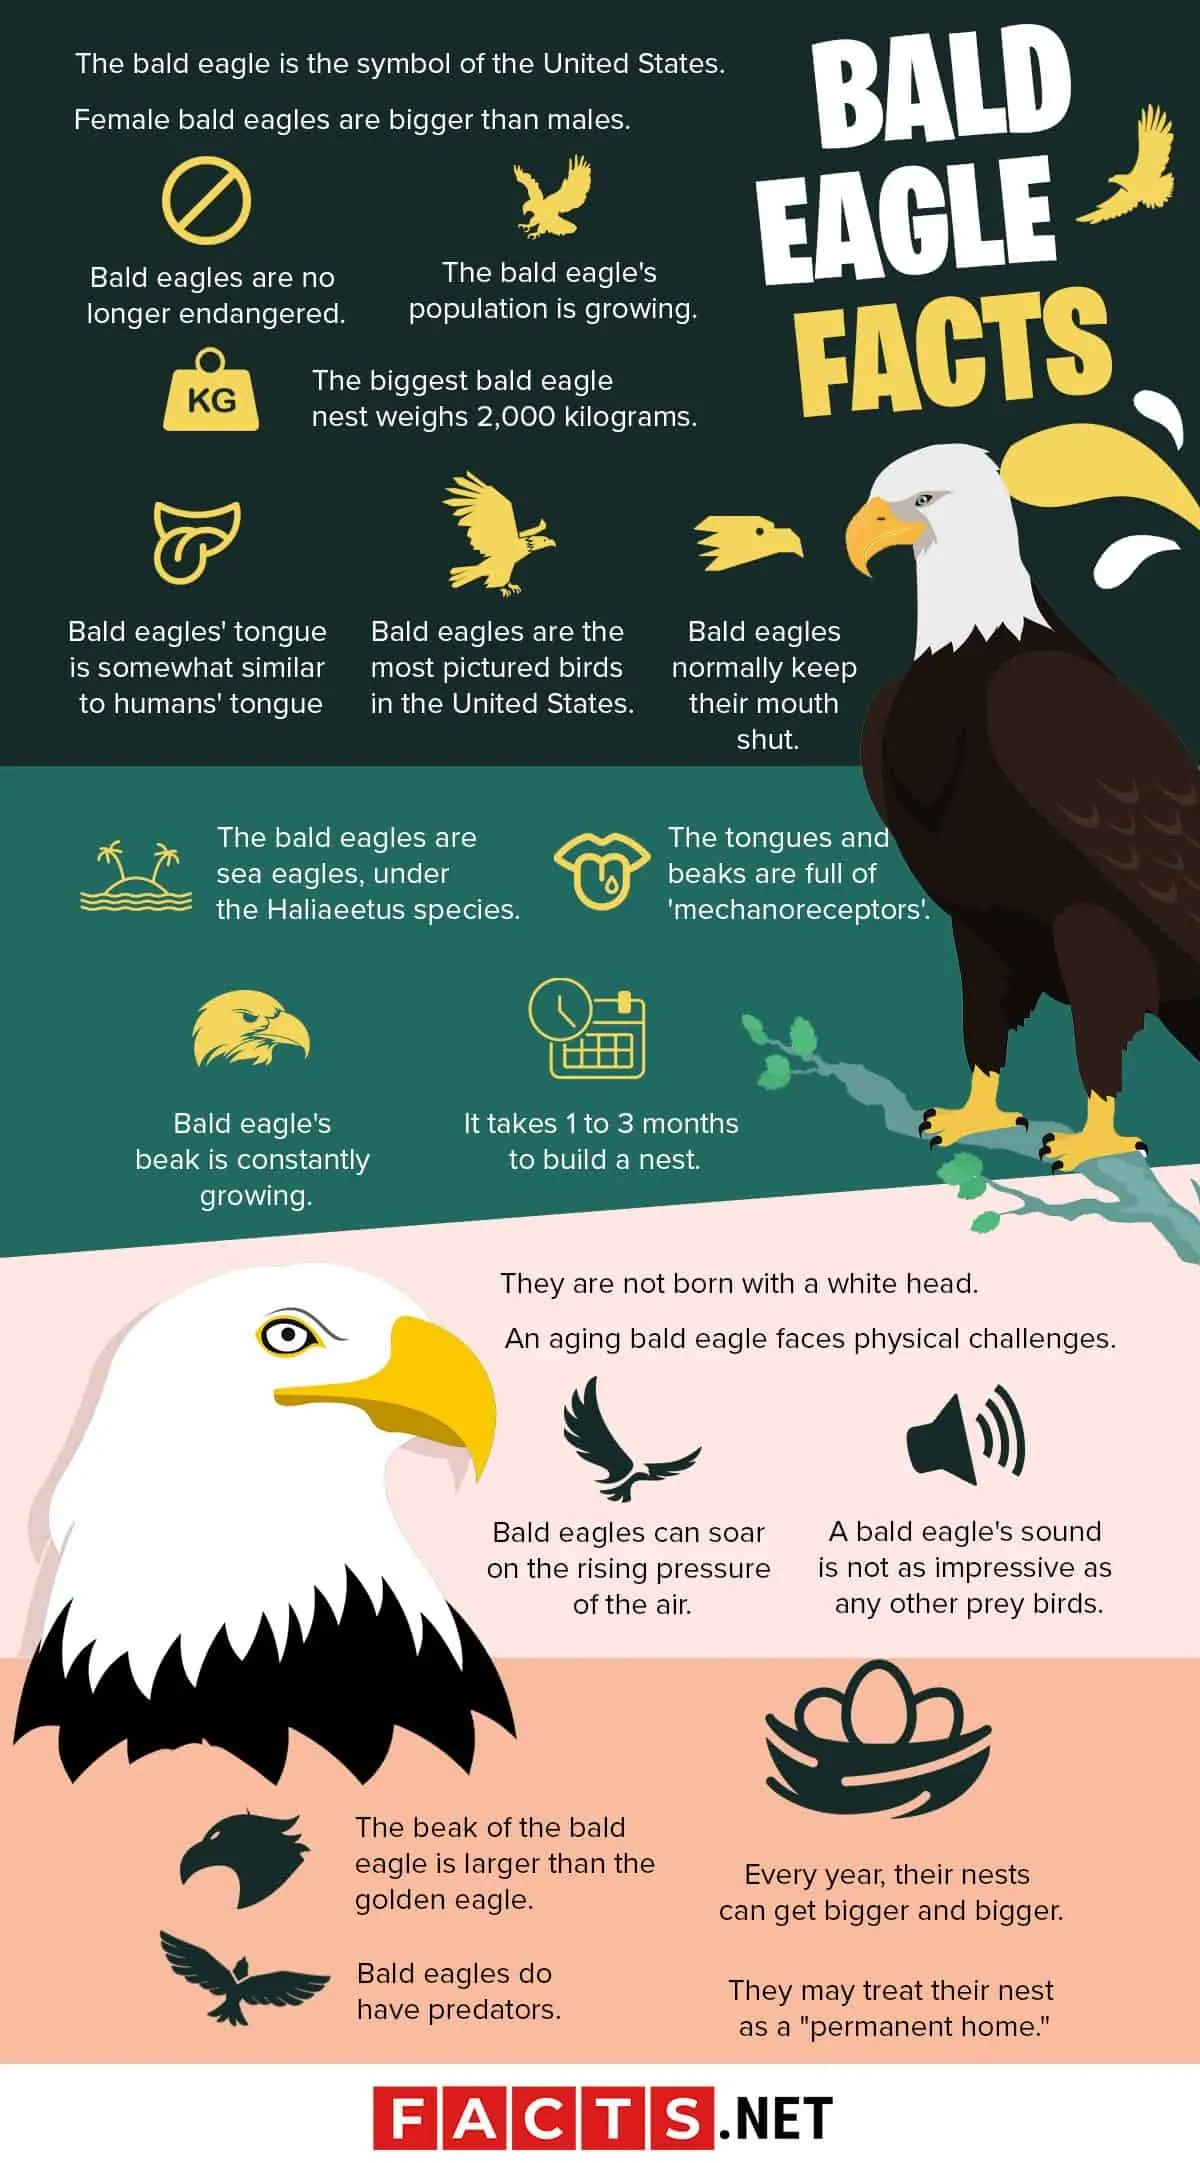 Bald Eagle Size To Human : eagle, human, Majestic, Eagle, Facts, Facts.net